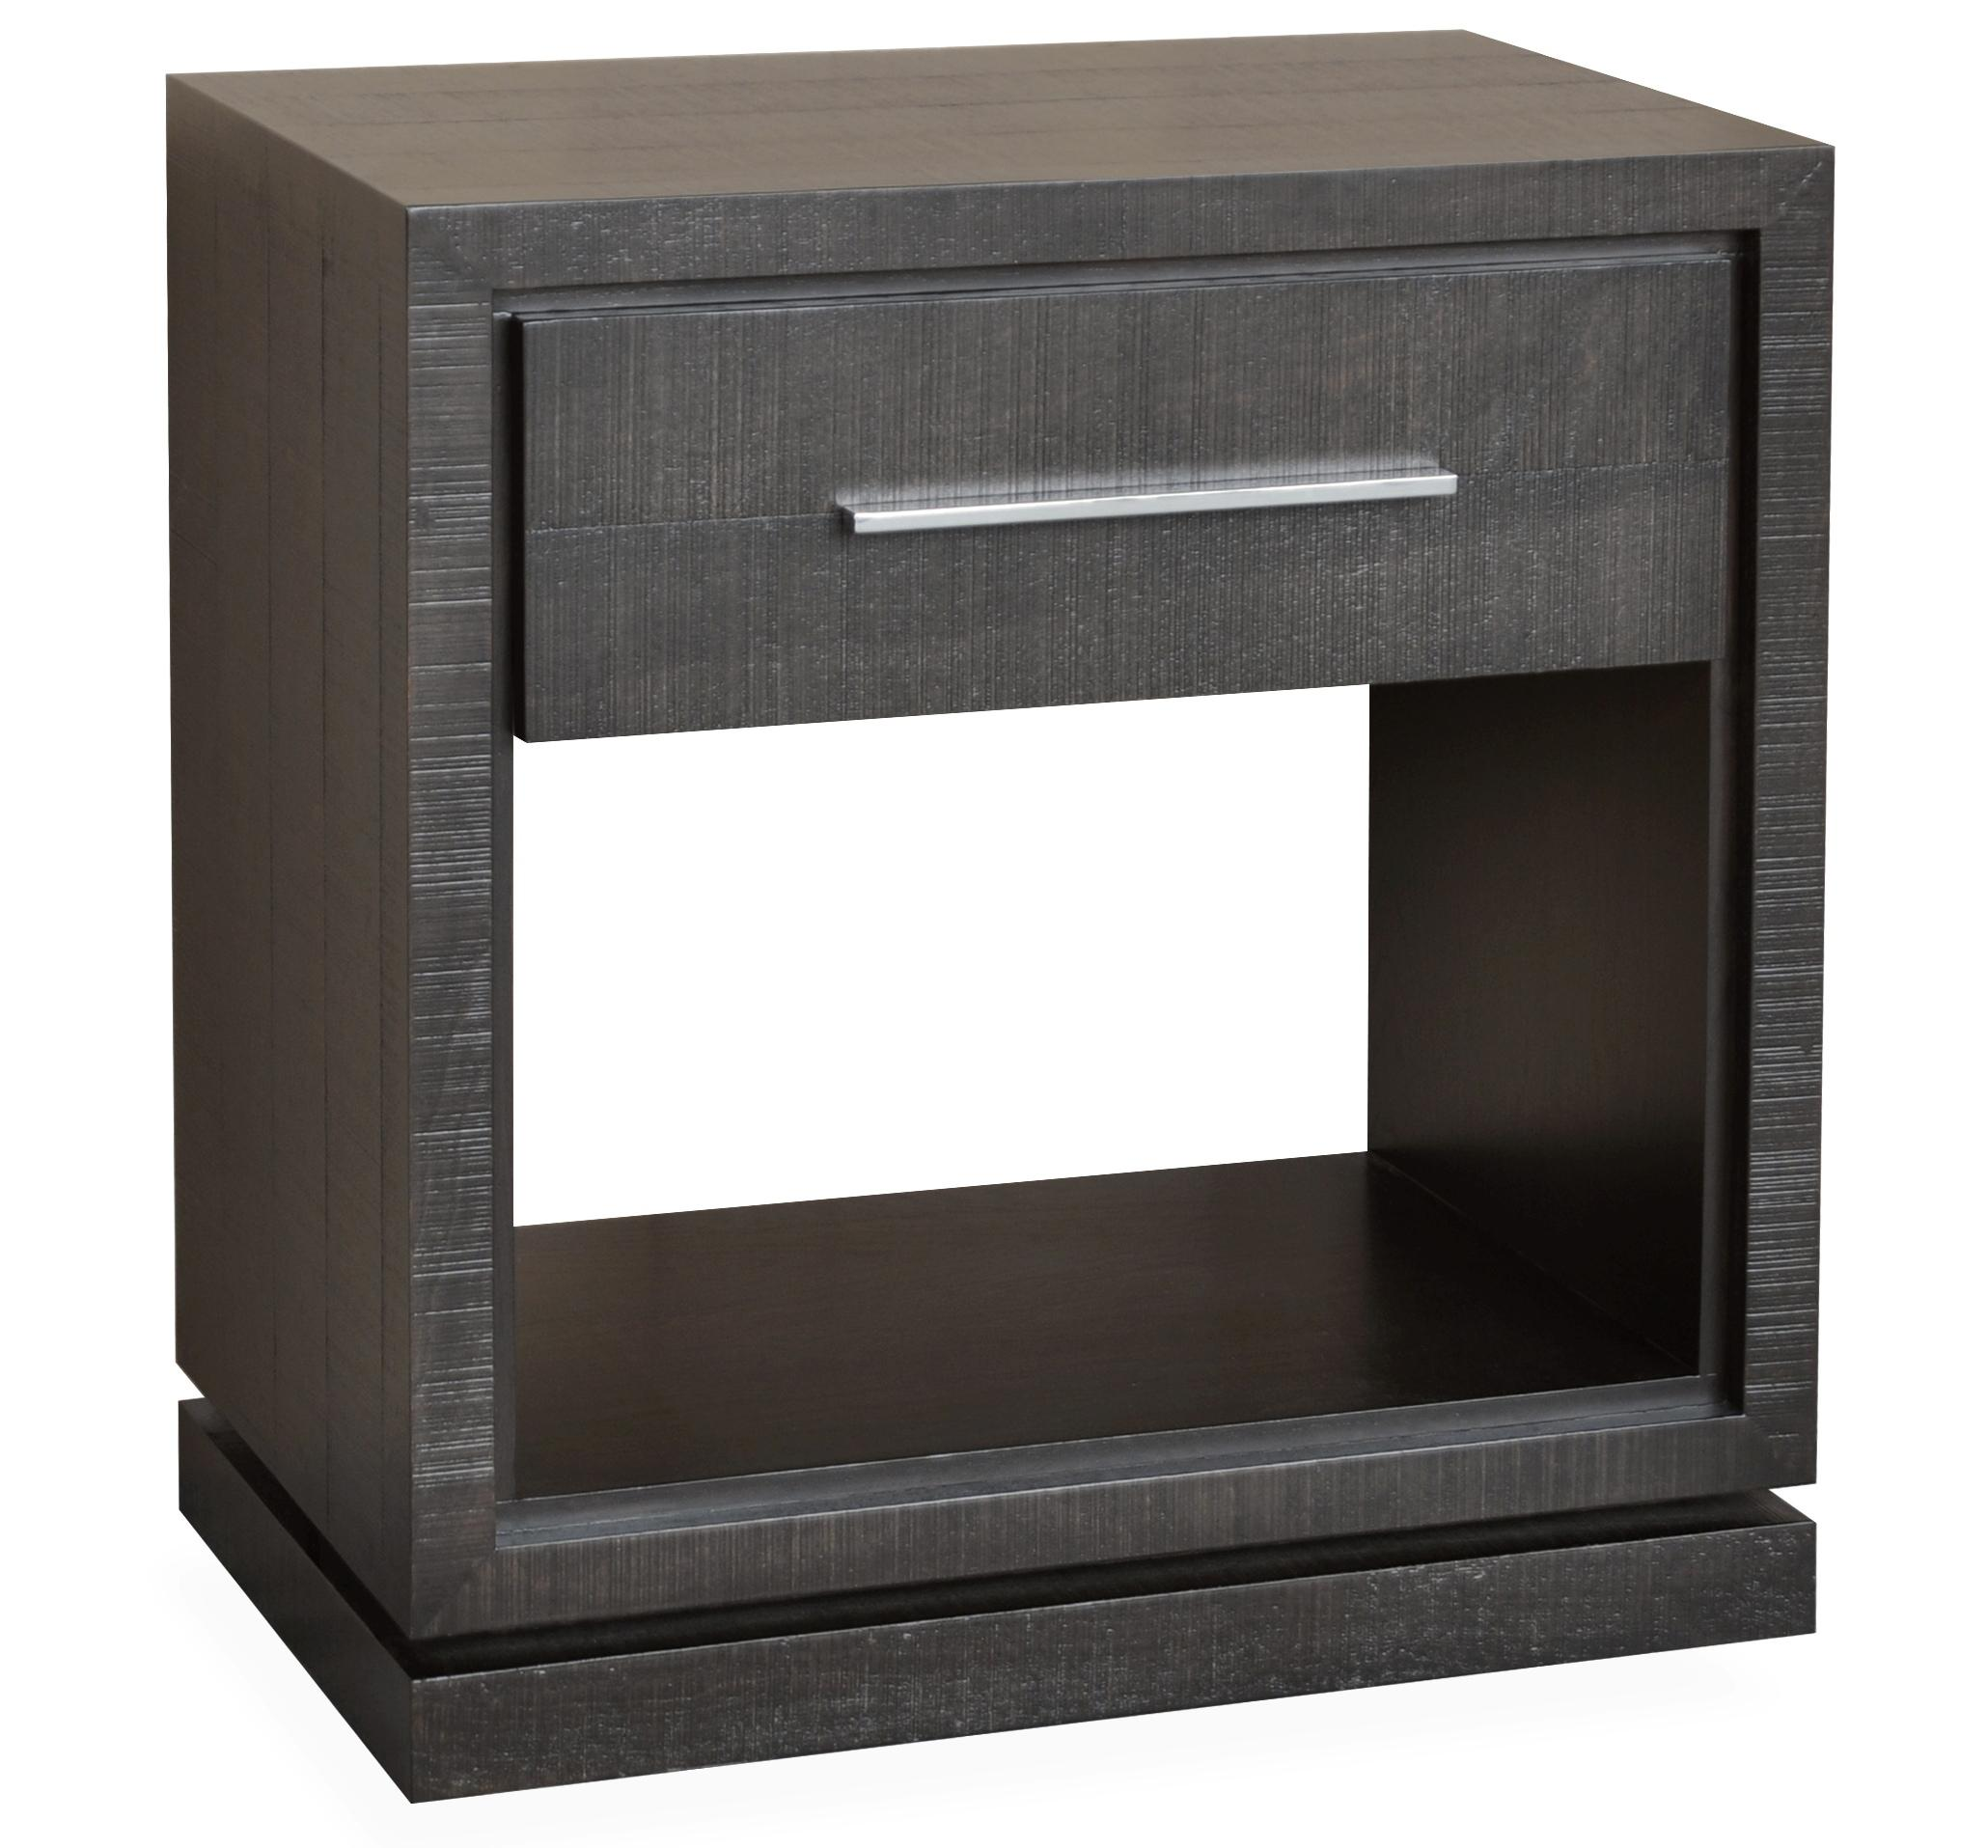 villa contemporary carleton furniture shagreen atherton dresser console entertainment and p vici store media bond c desk